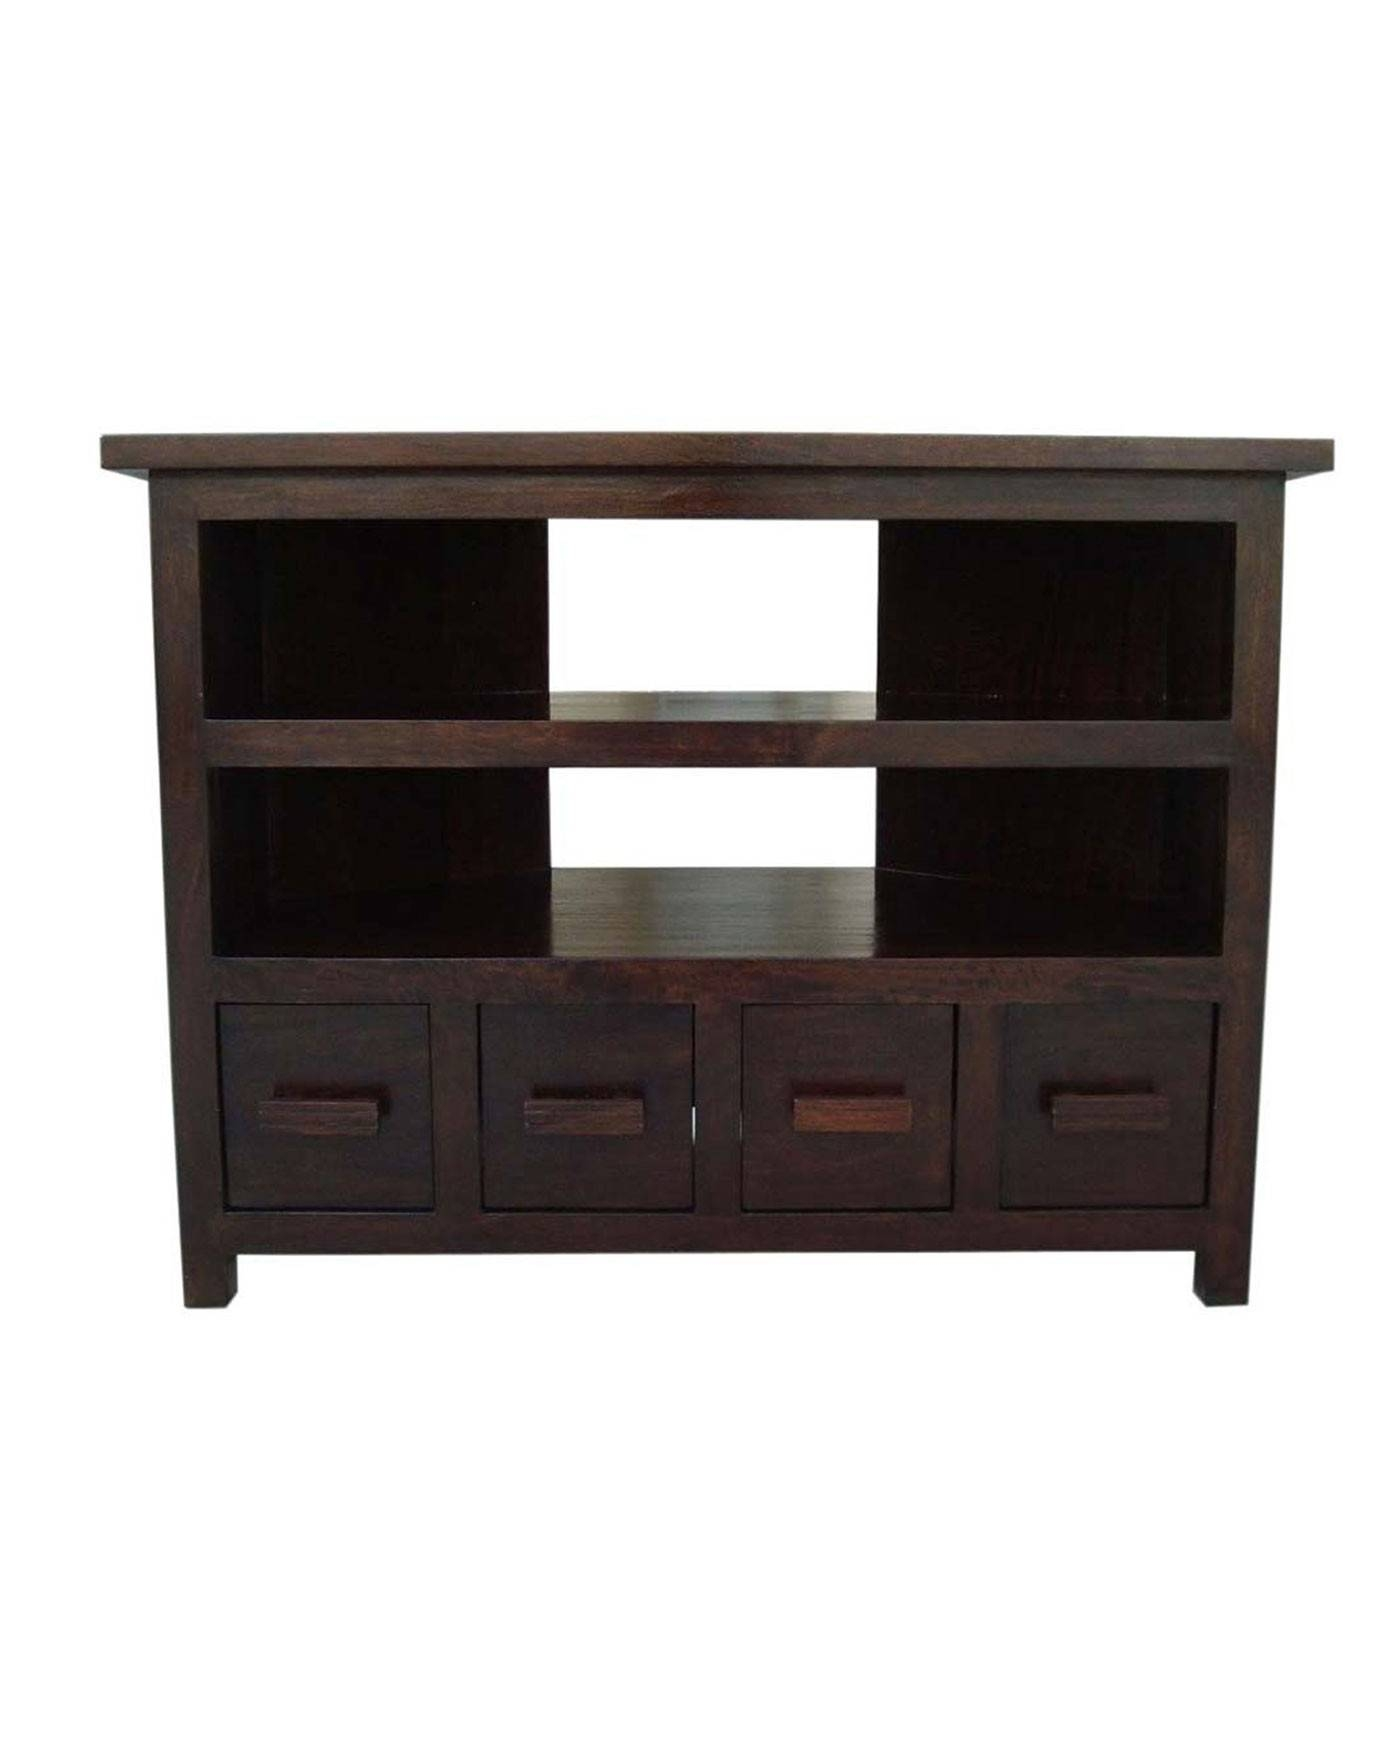 Mangat Tall Corner Tv Unit - Homescapes for Corner Sideboard Units (Image 21 of 30)